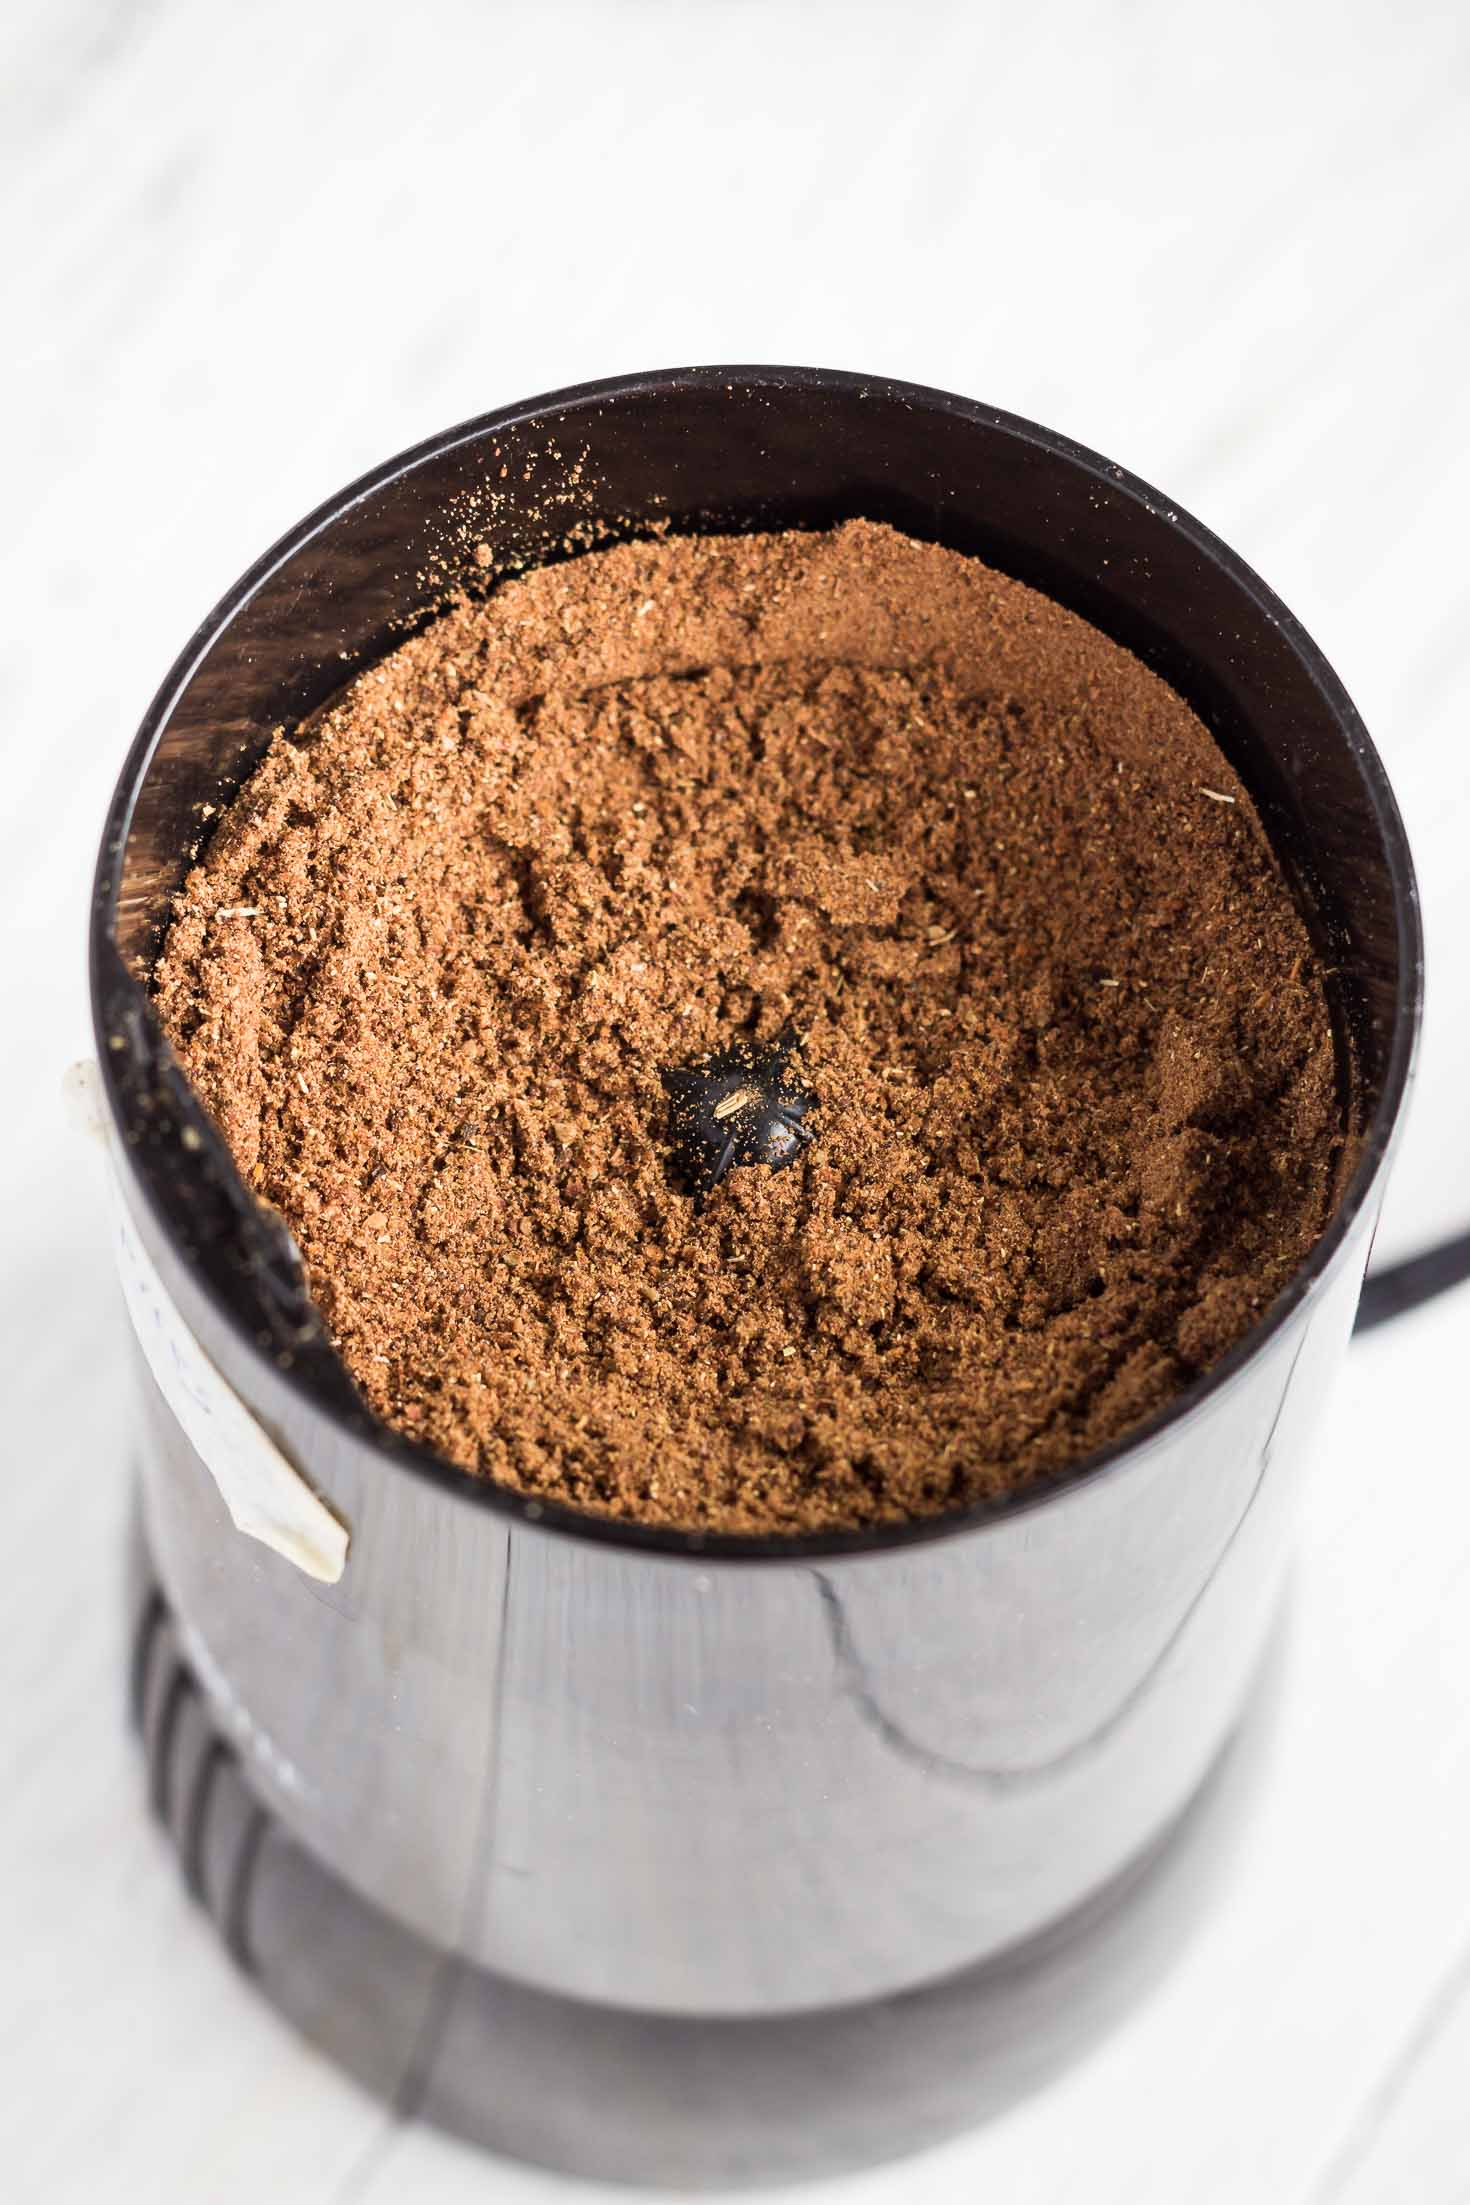 Chinese 5-spice powder-in coffee grinder